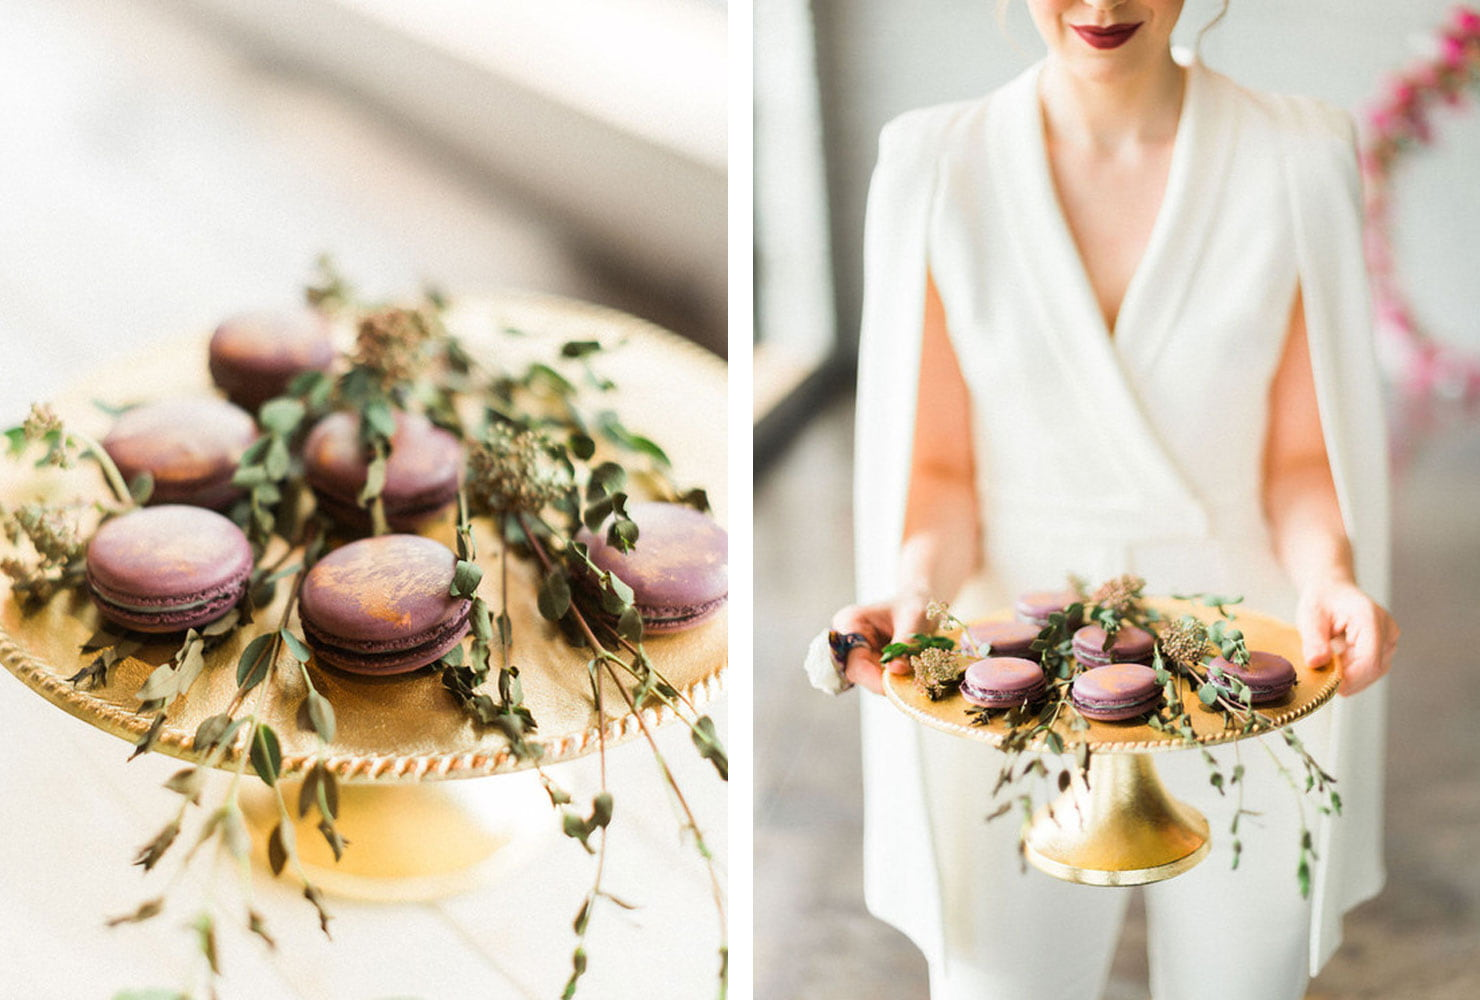 Purple macaroons on a gold platter with greenery